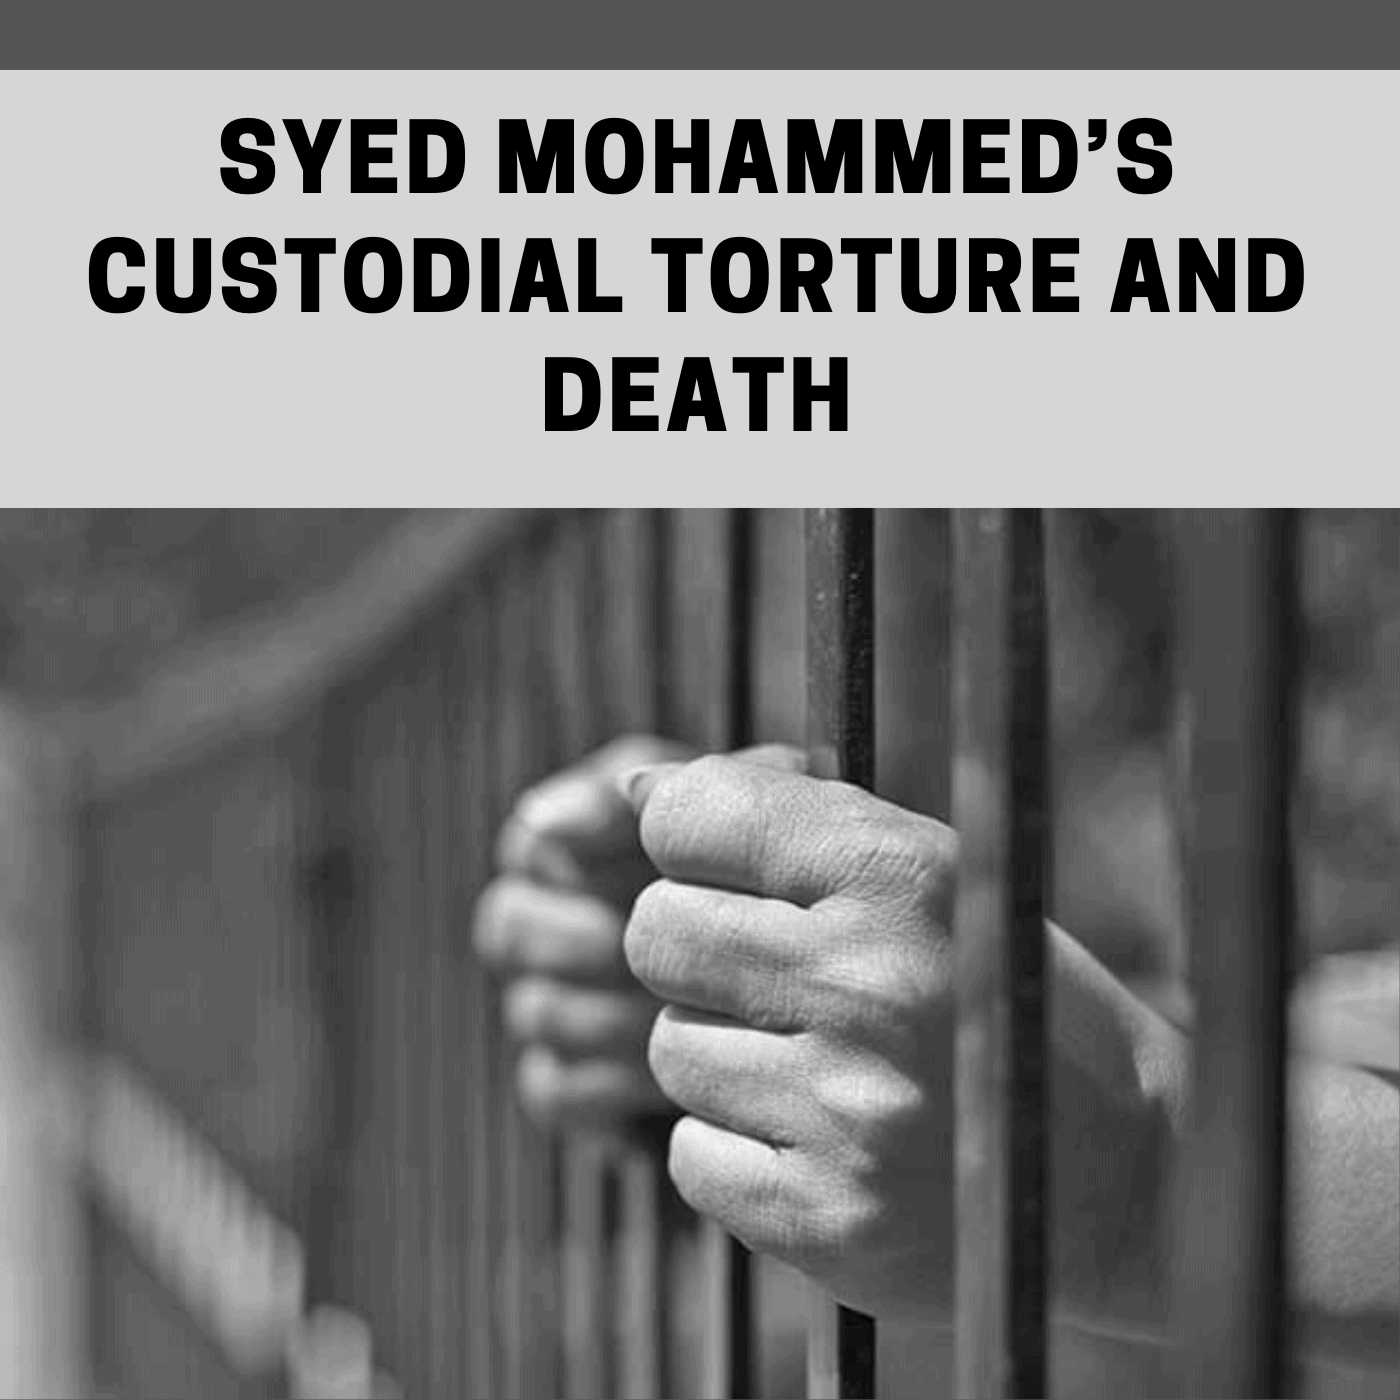 Fact Finding: Syed Mohammed's Custodial Torture and Death